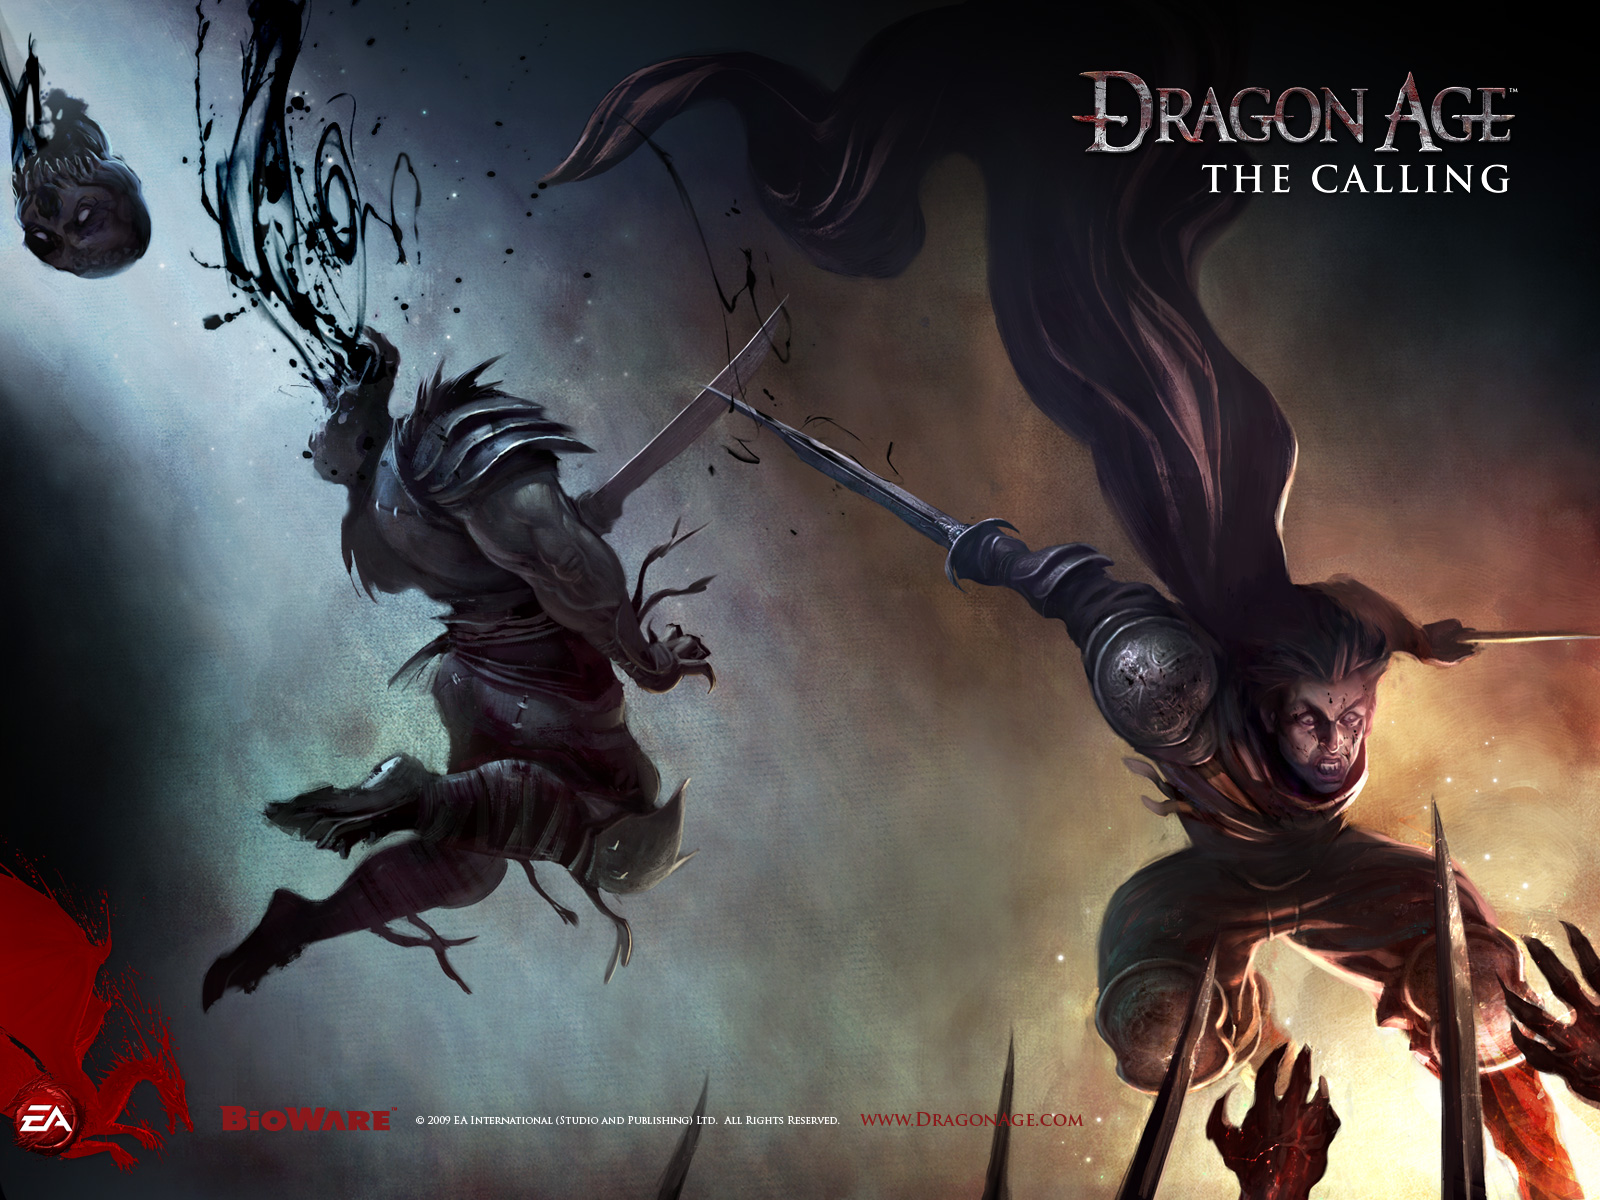 Dragon Age Origins Wallpapers: The Calling Wallpaper Full